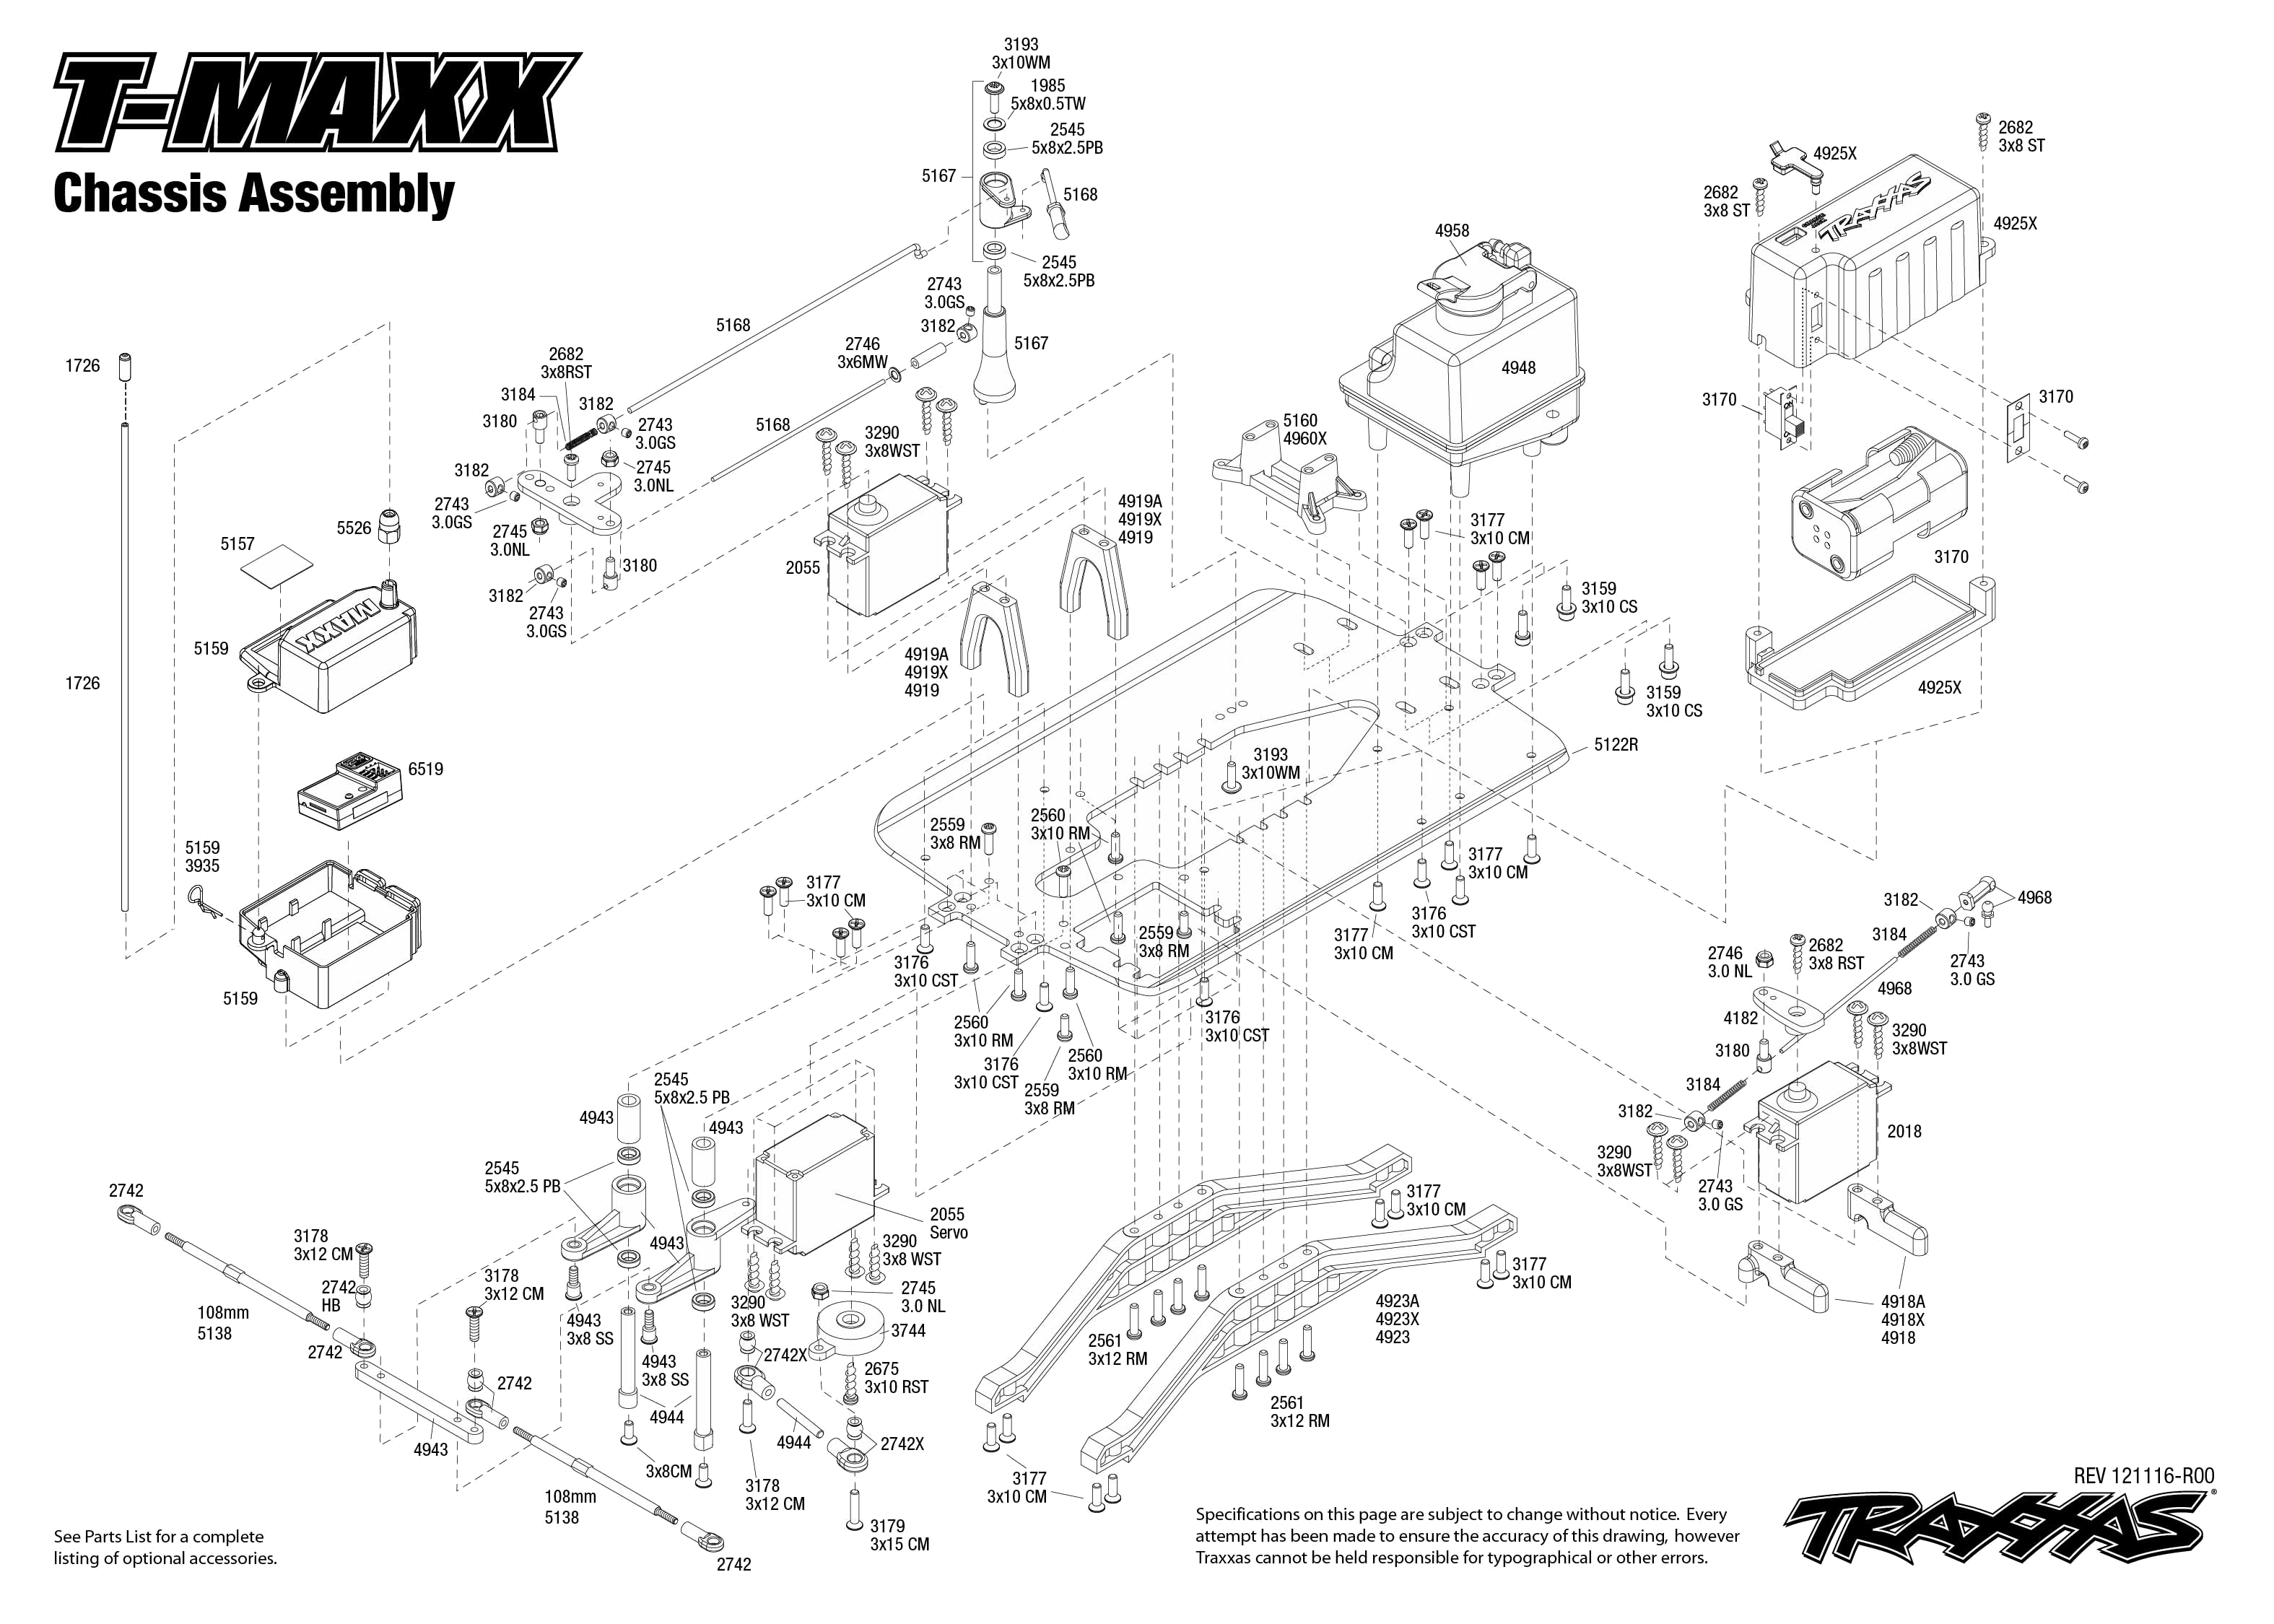 2 5 Engine Exploded Diagram | Wiring Diagram